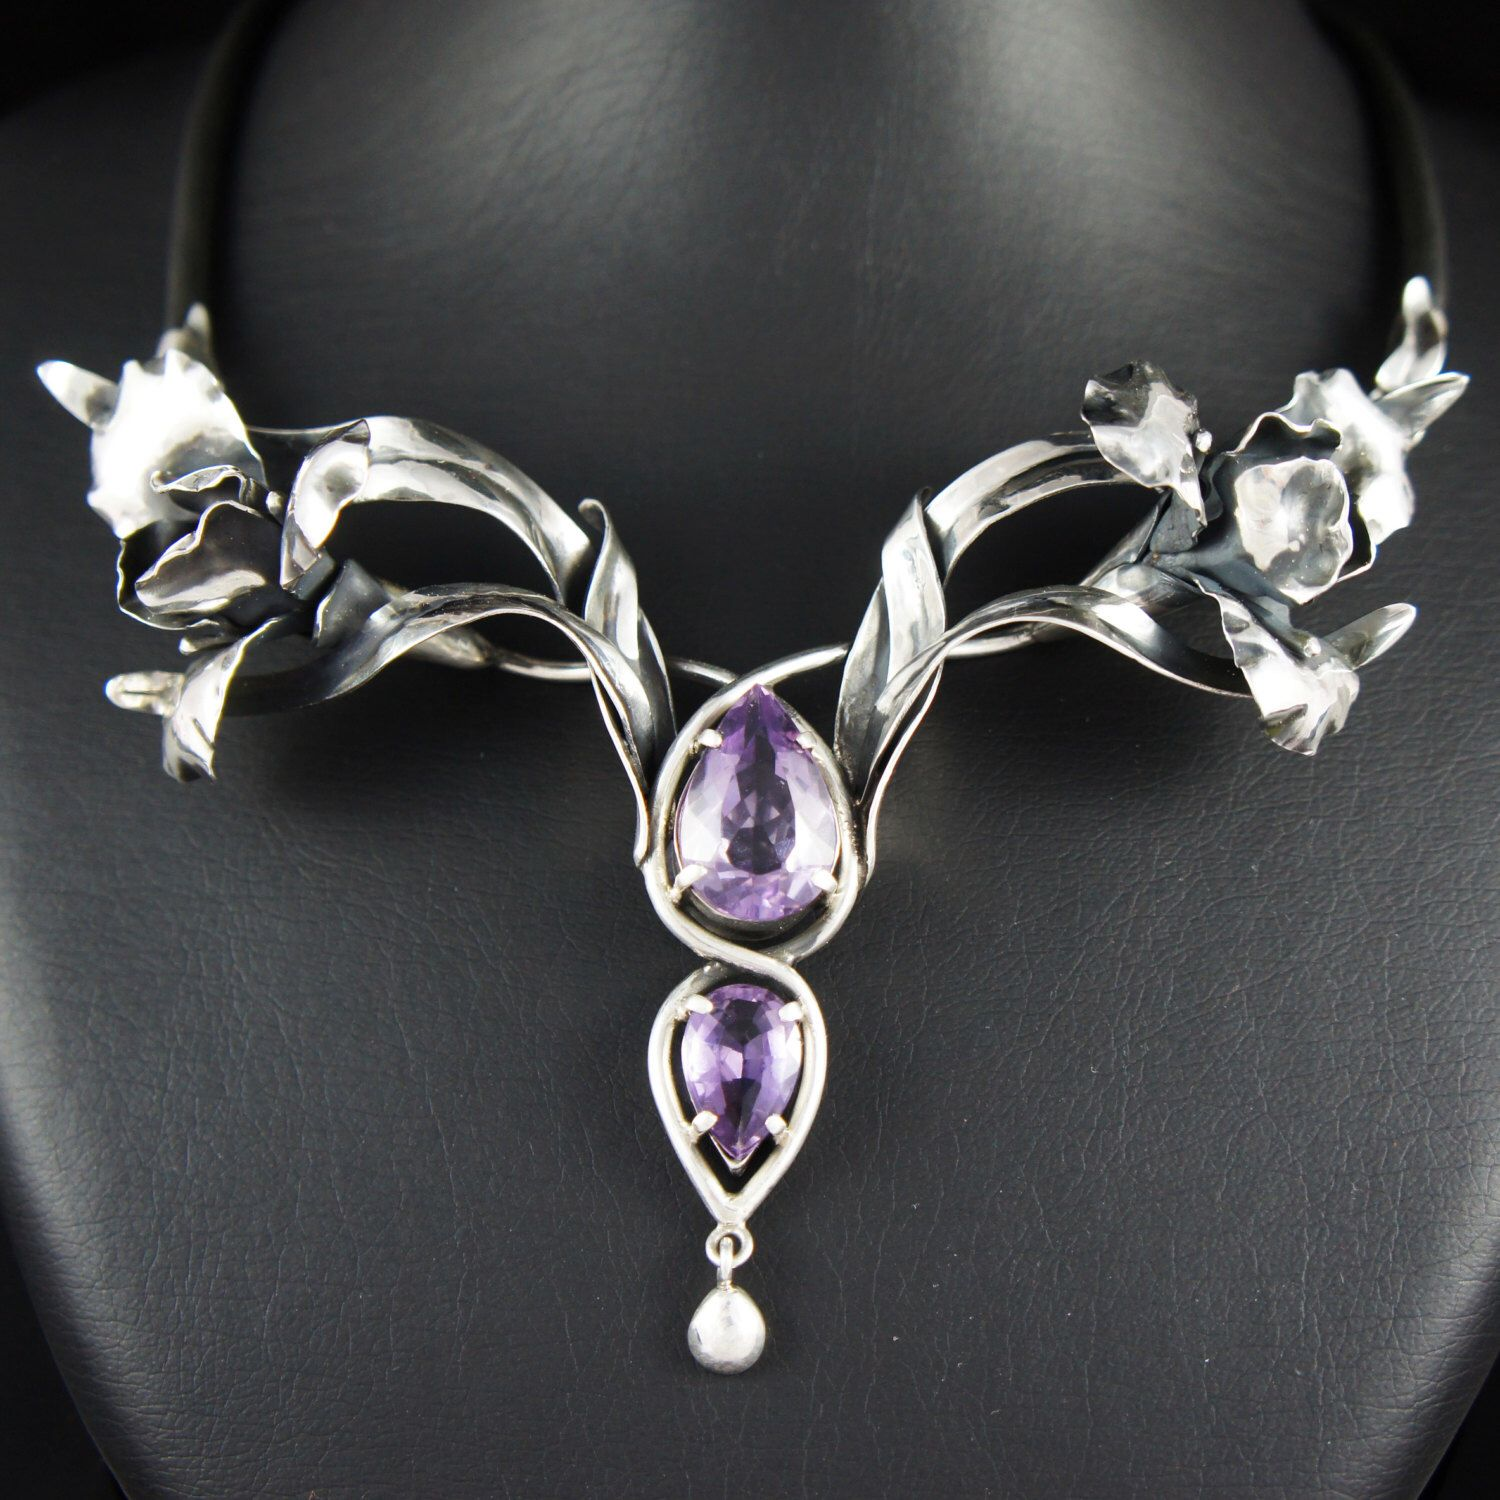 Iris flower and amethyst statement necklace - OOAK Art Nouveu sterling silver jewelry by TheManerovs on Etsy https://www.etsy.com/listing/161339010/iris-flower-and-amethyst-statement